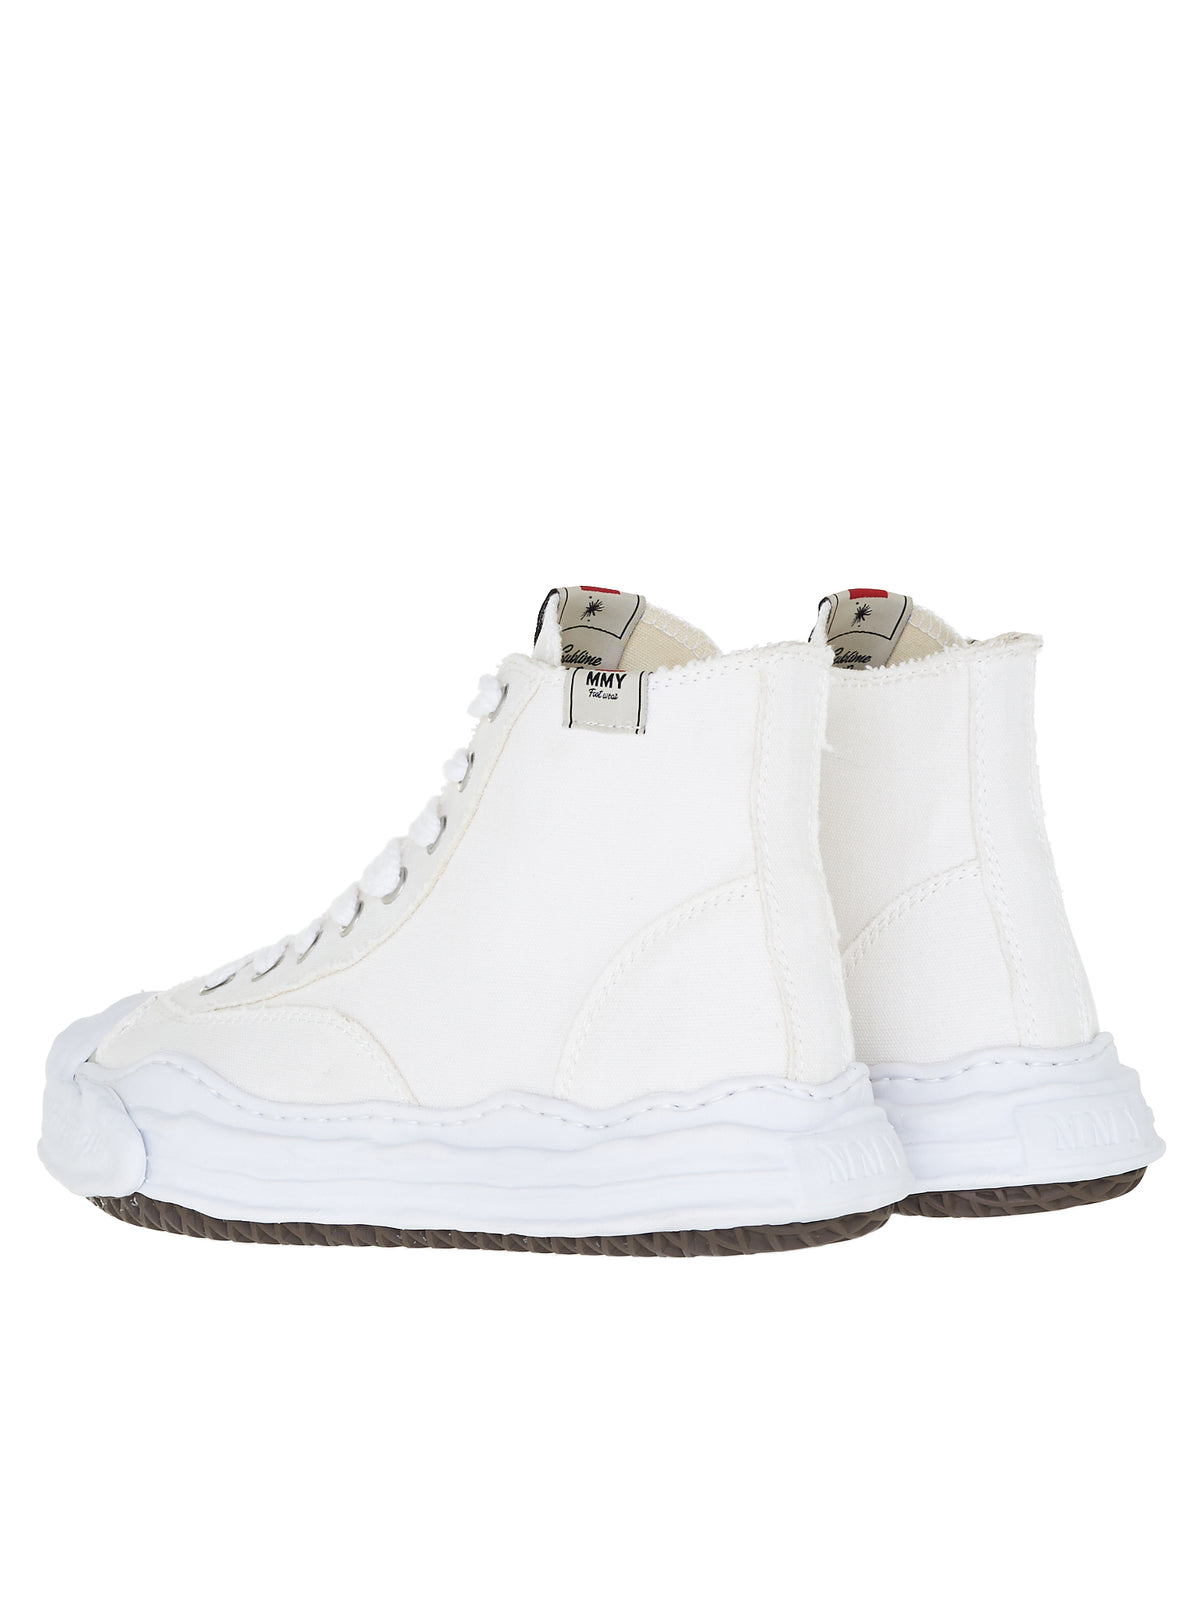 Original Sole Hi-Top Sneakers (A05FW701-WHITE)